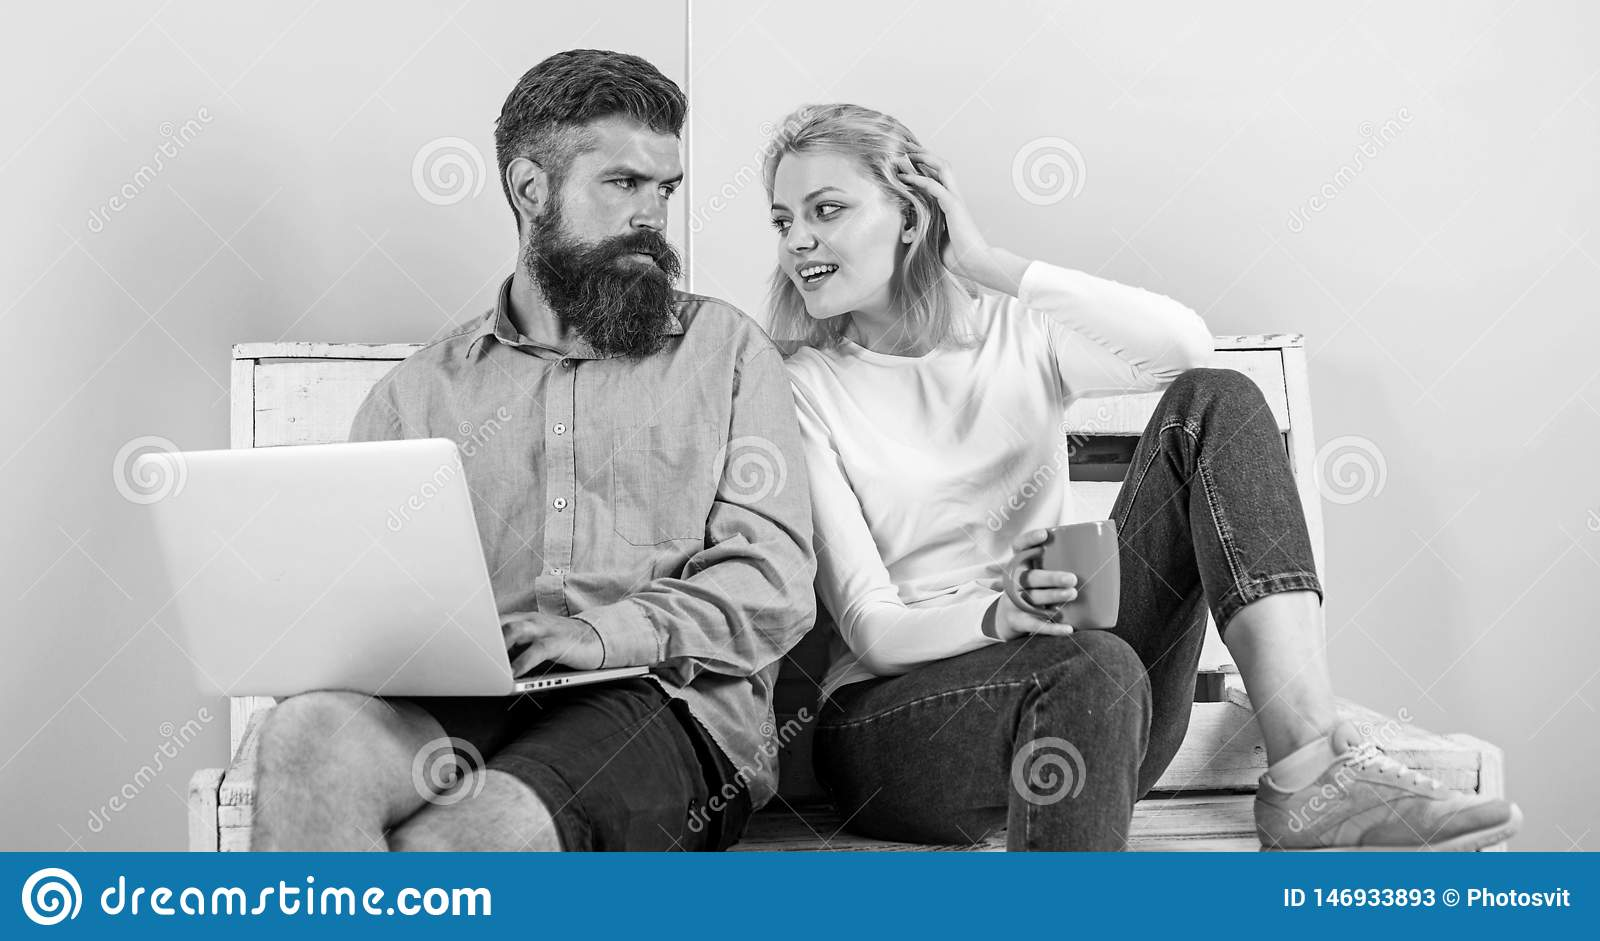 Freelance benefits. Man works as internet technologies expert on freelance. Woman smiling face drink tea or coffee near